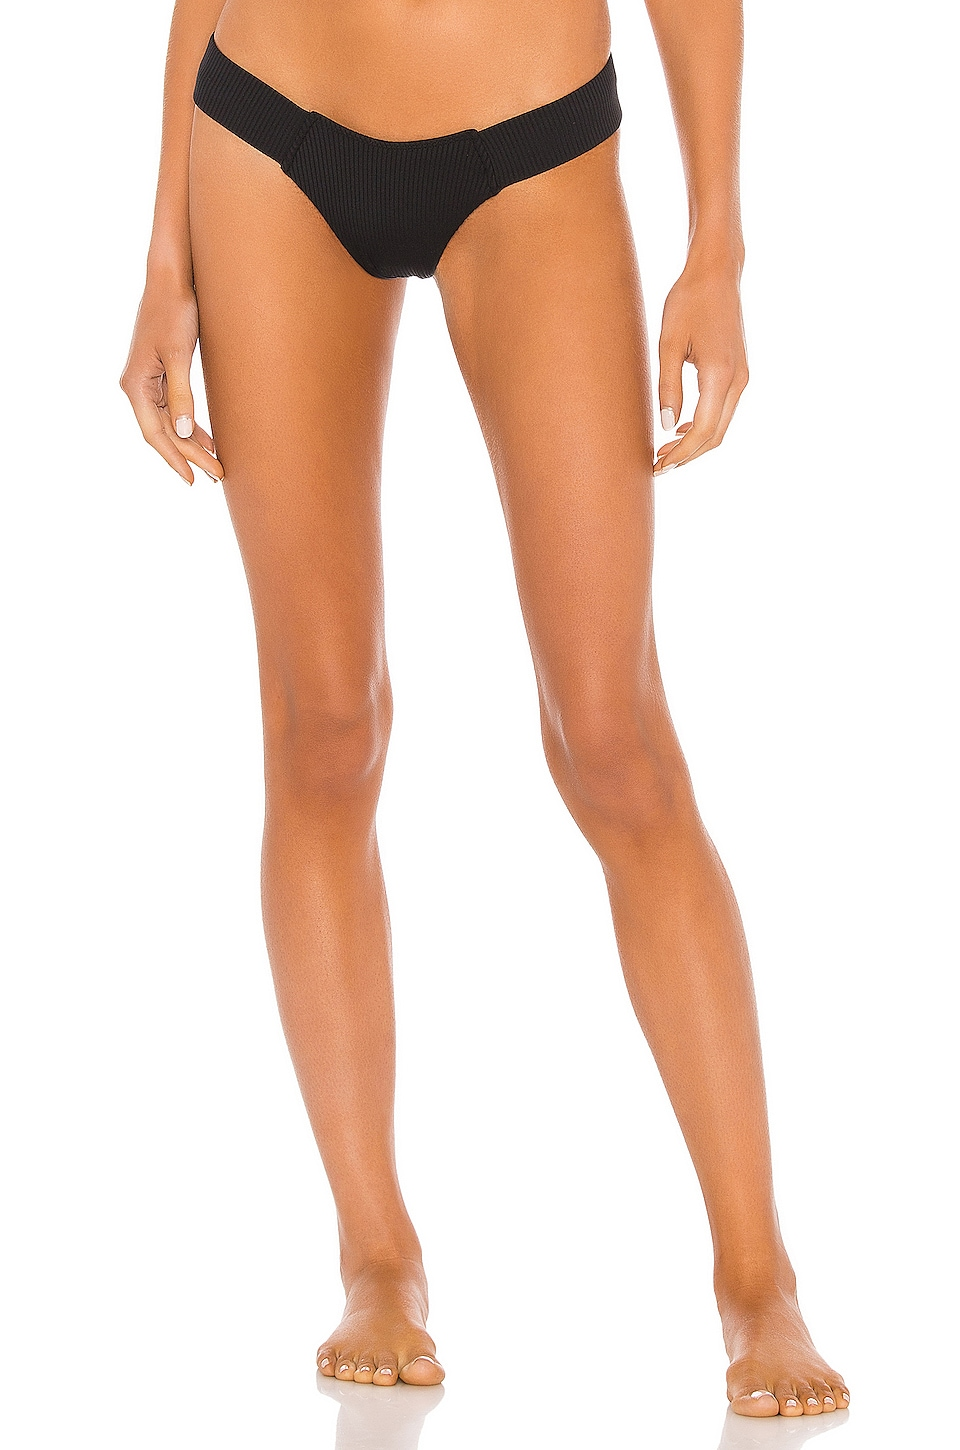 Montce Swim Uno Bikini Bottom in Black